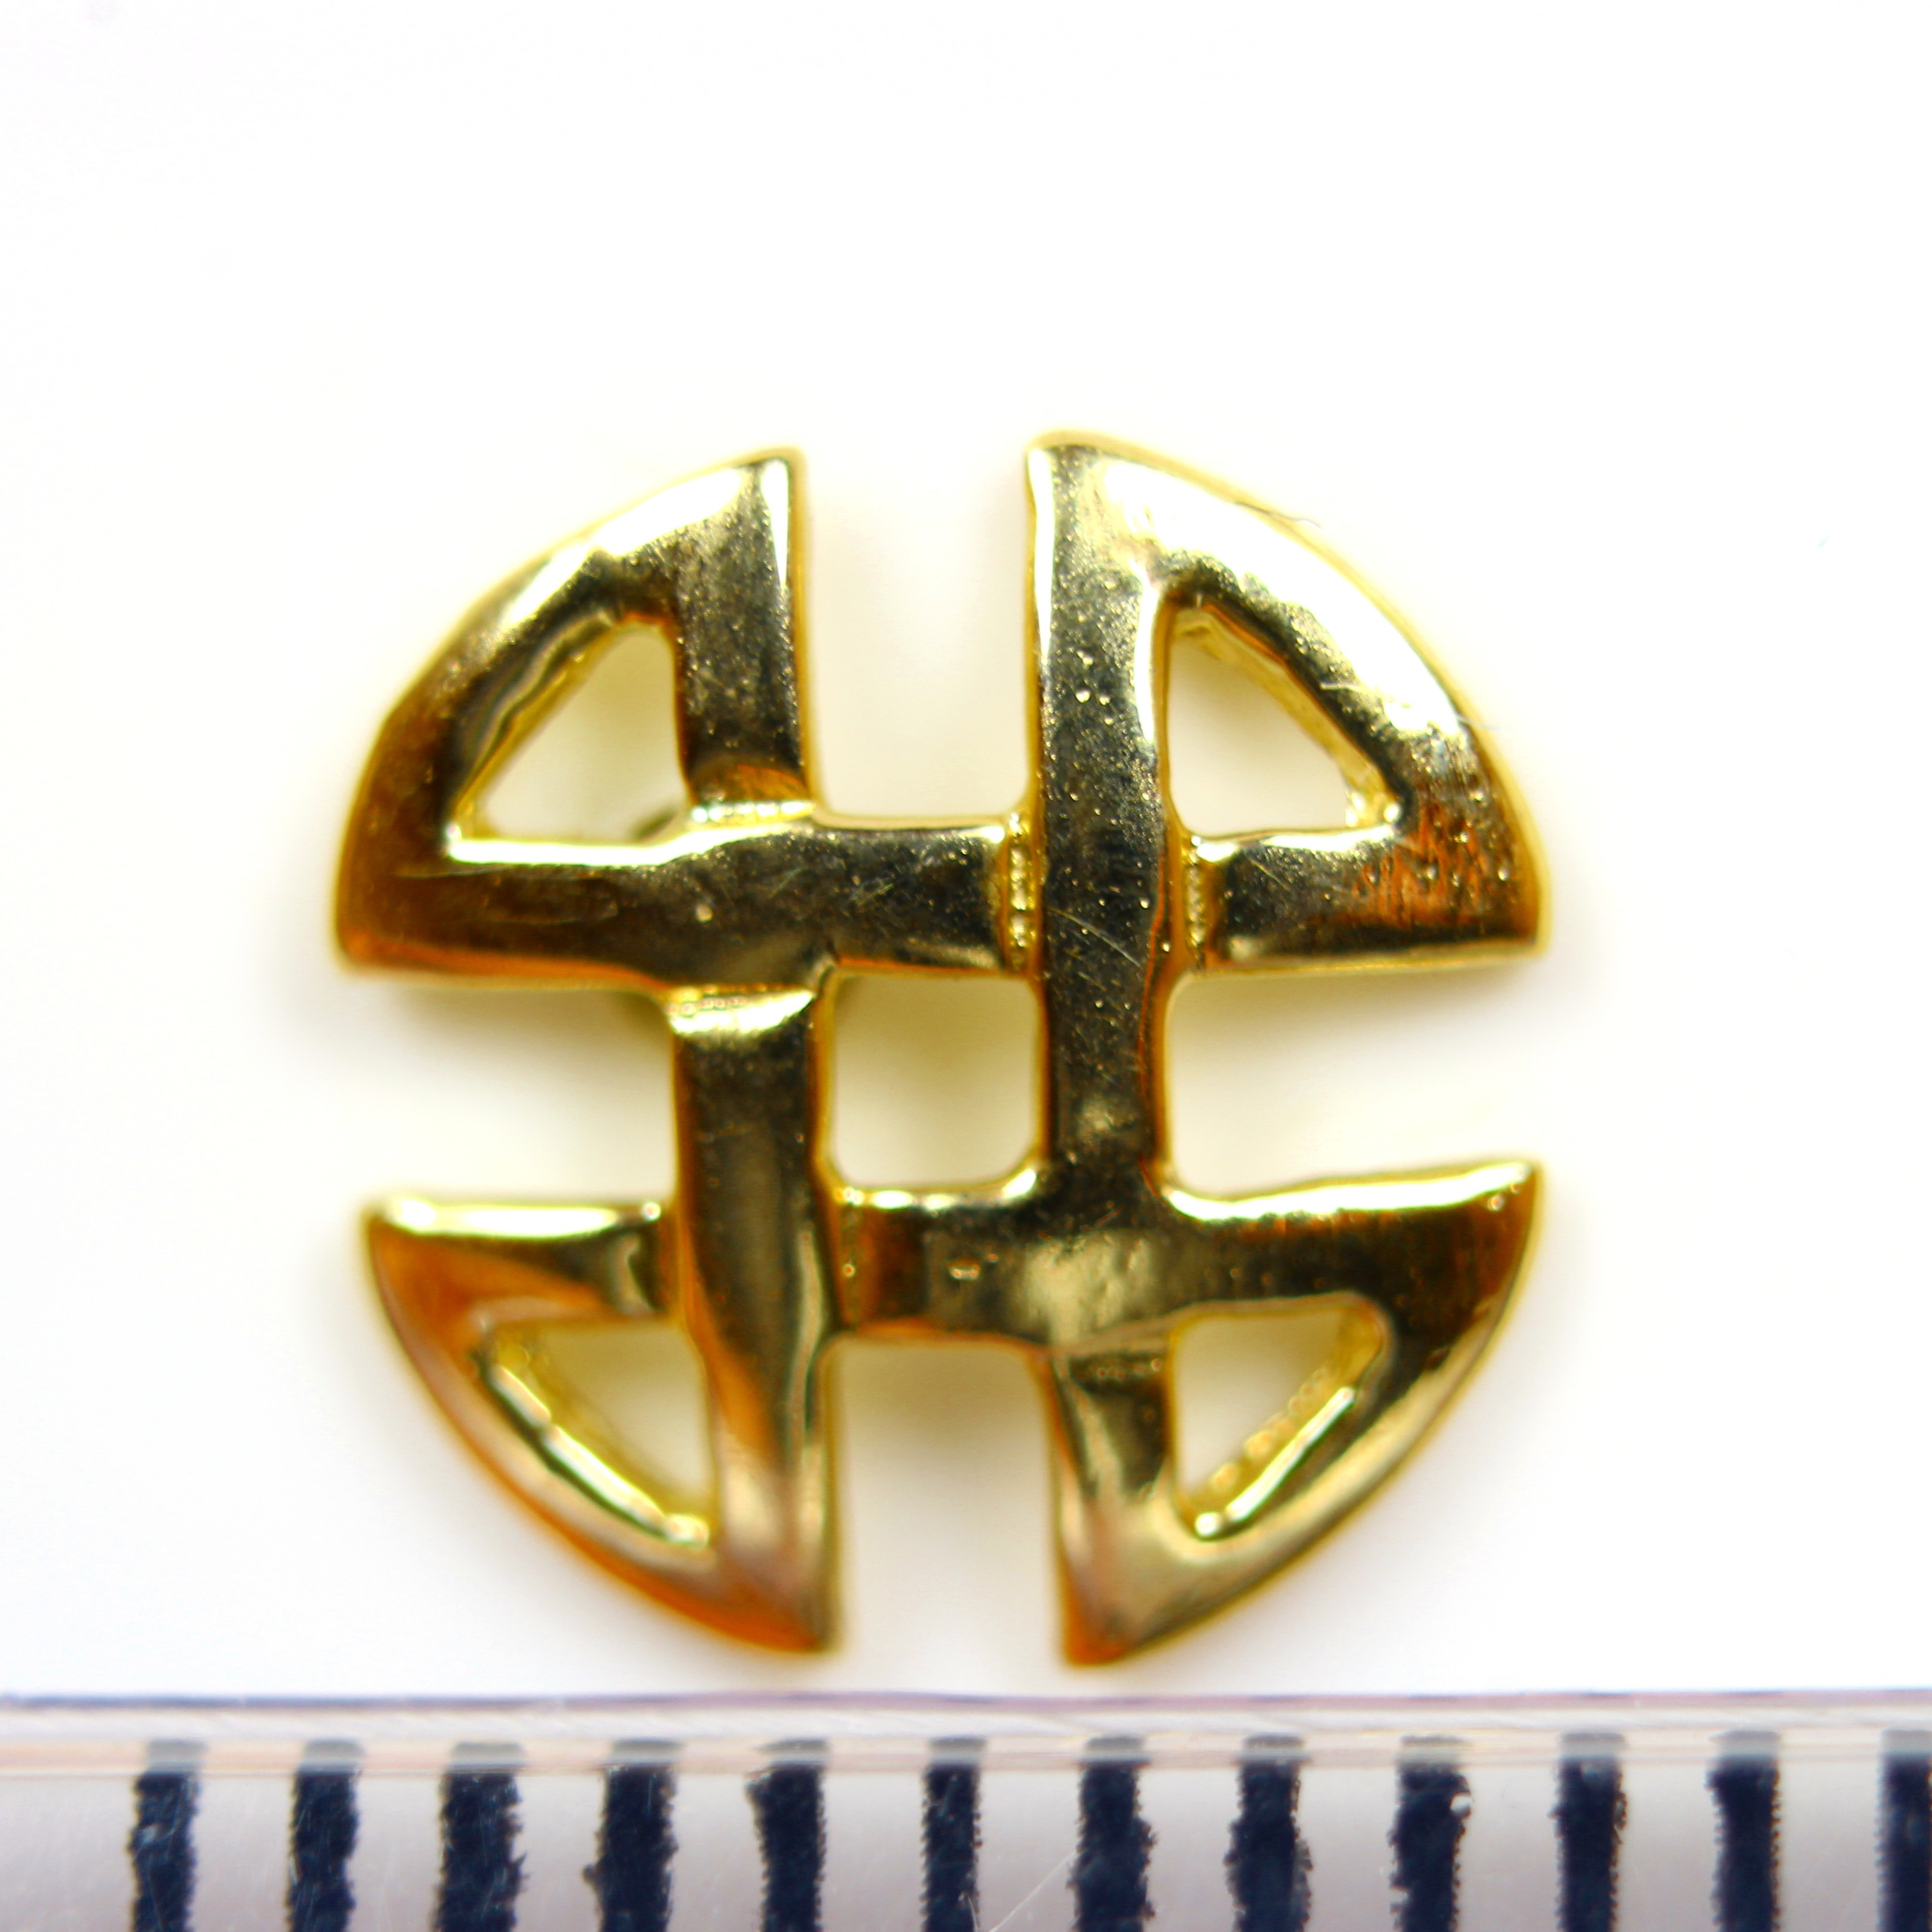 Arranview Jewellery Celtic Knotwork 8mm Stud Earring - 9ct Yellow Gold Nx4fG